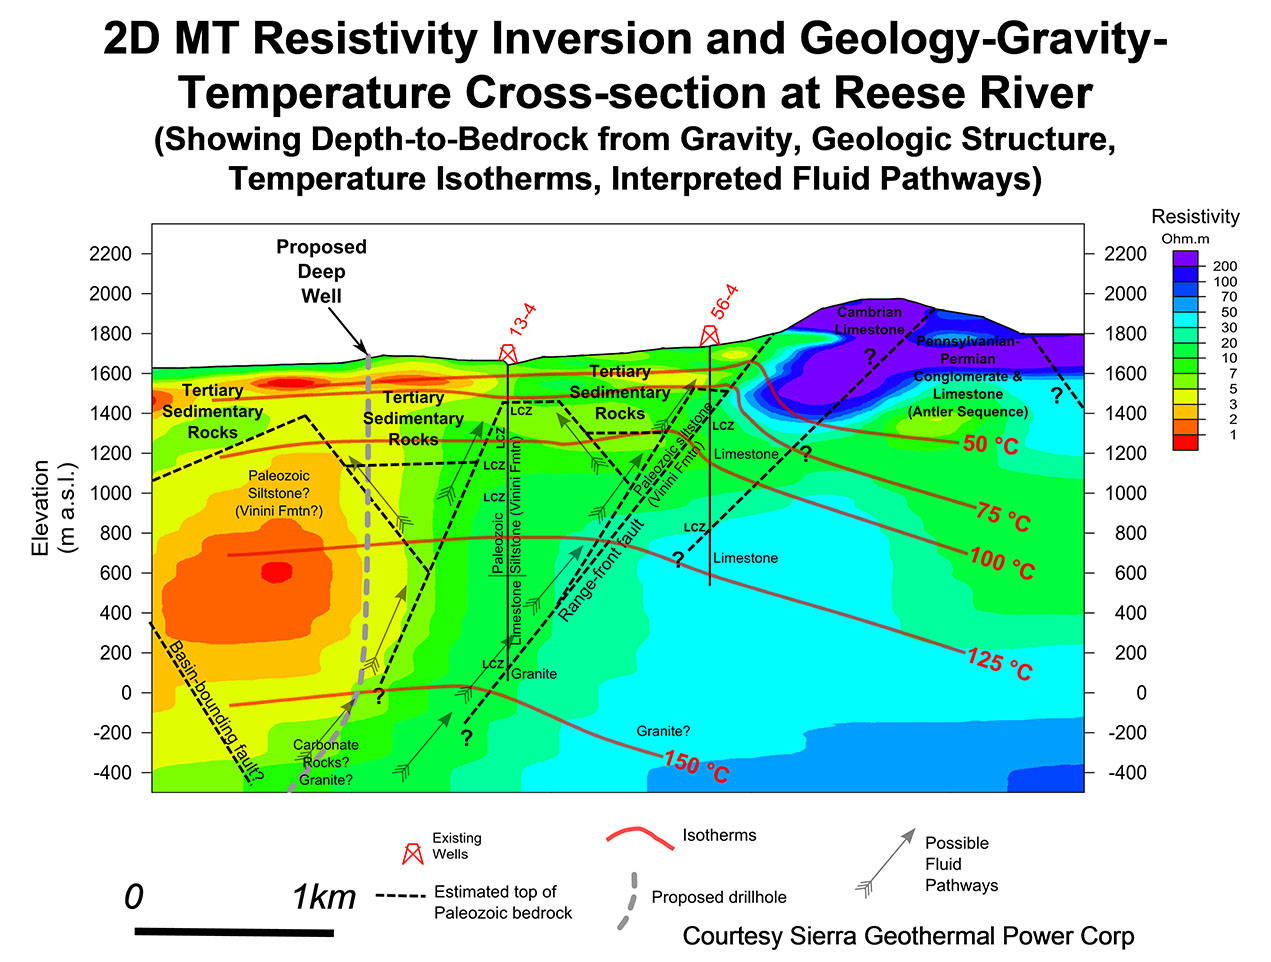 temperature inversion essay Inversion takes place in the atmosphere temperature is lower near the ground than at a height this is called radiation inversion when the sun rises and heats air [] navigation world's largest collection of essays published by experts share your essayscom is the home of thousands of.